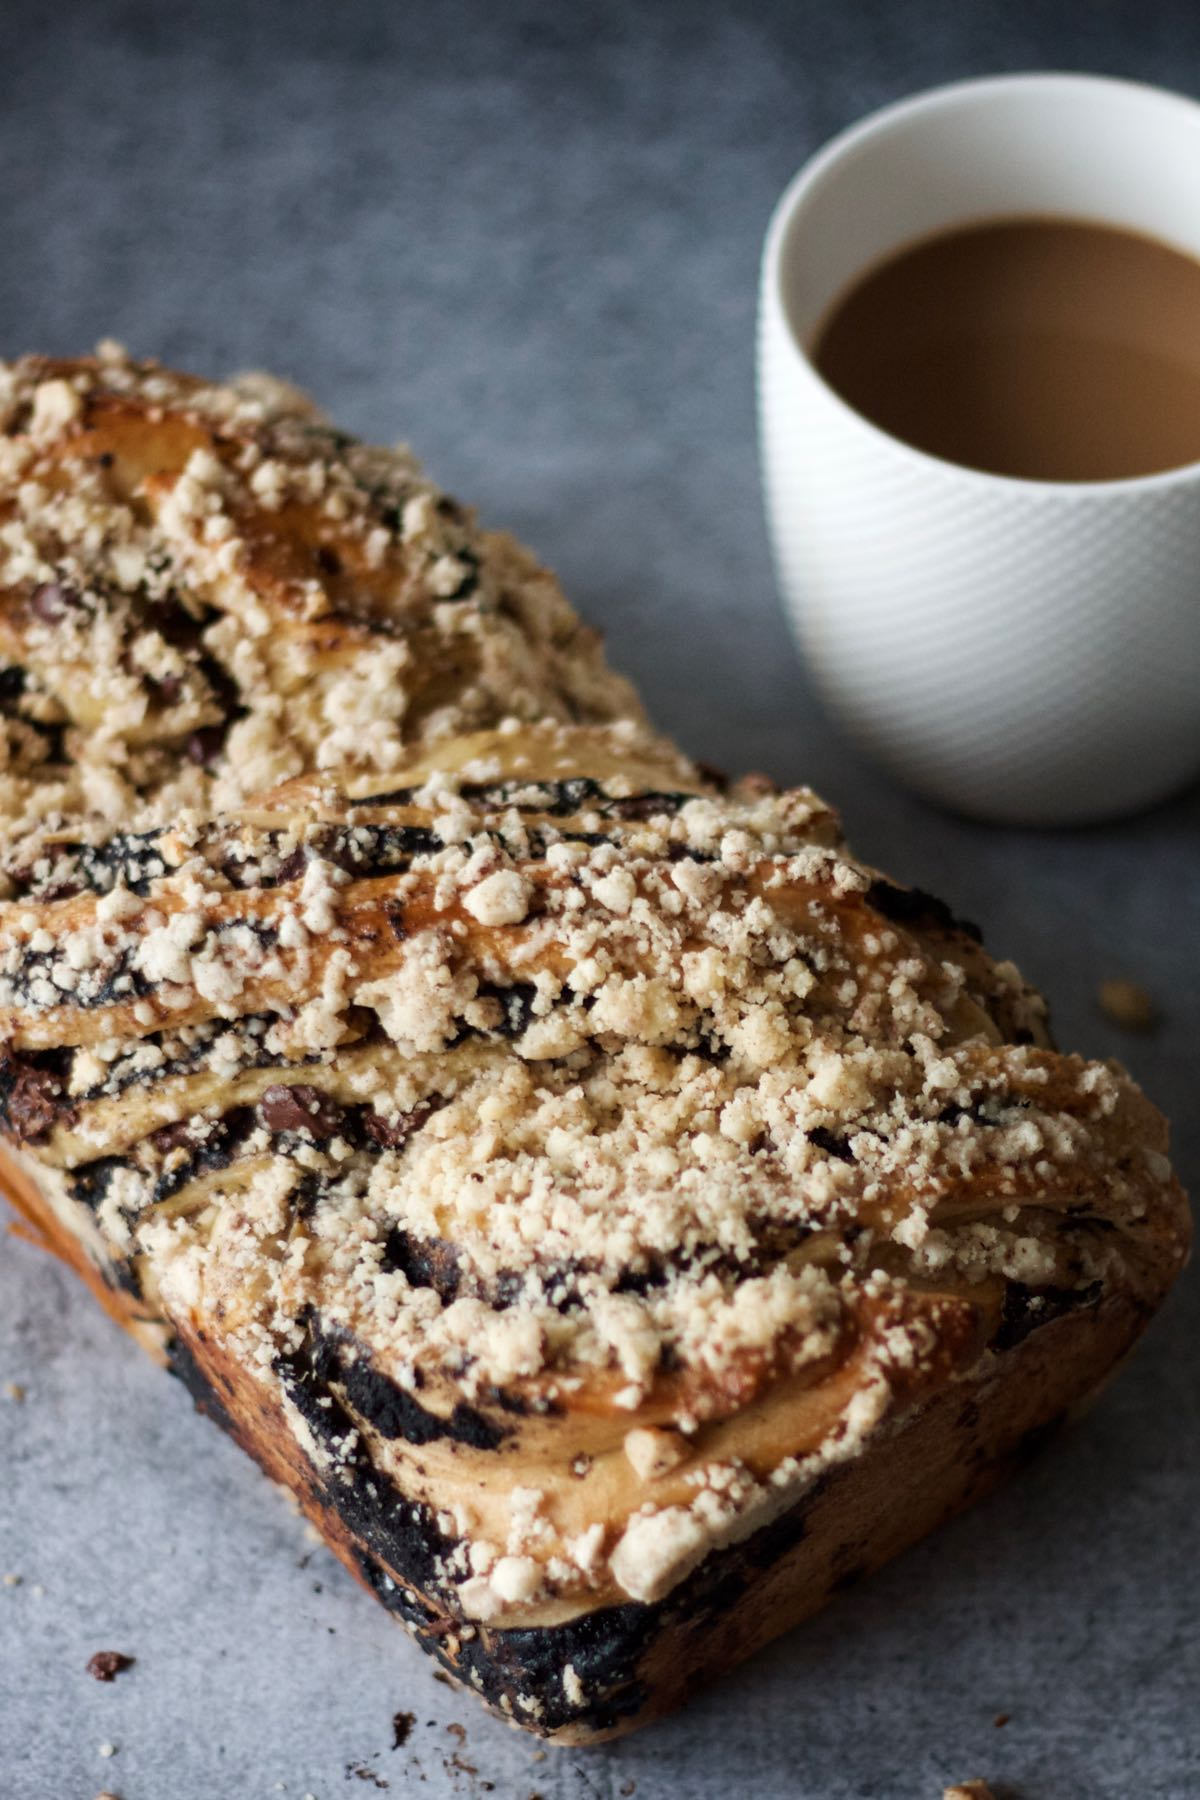 A whole loaf of Dark Chocolate and Cashew Babka with coffee on the side